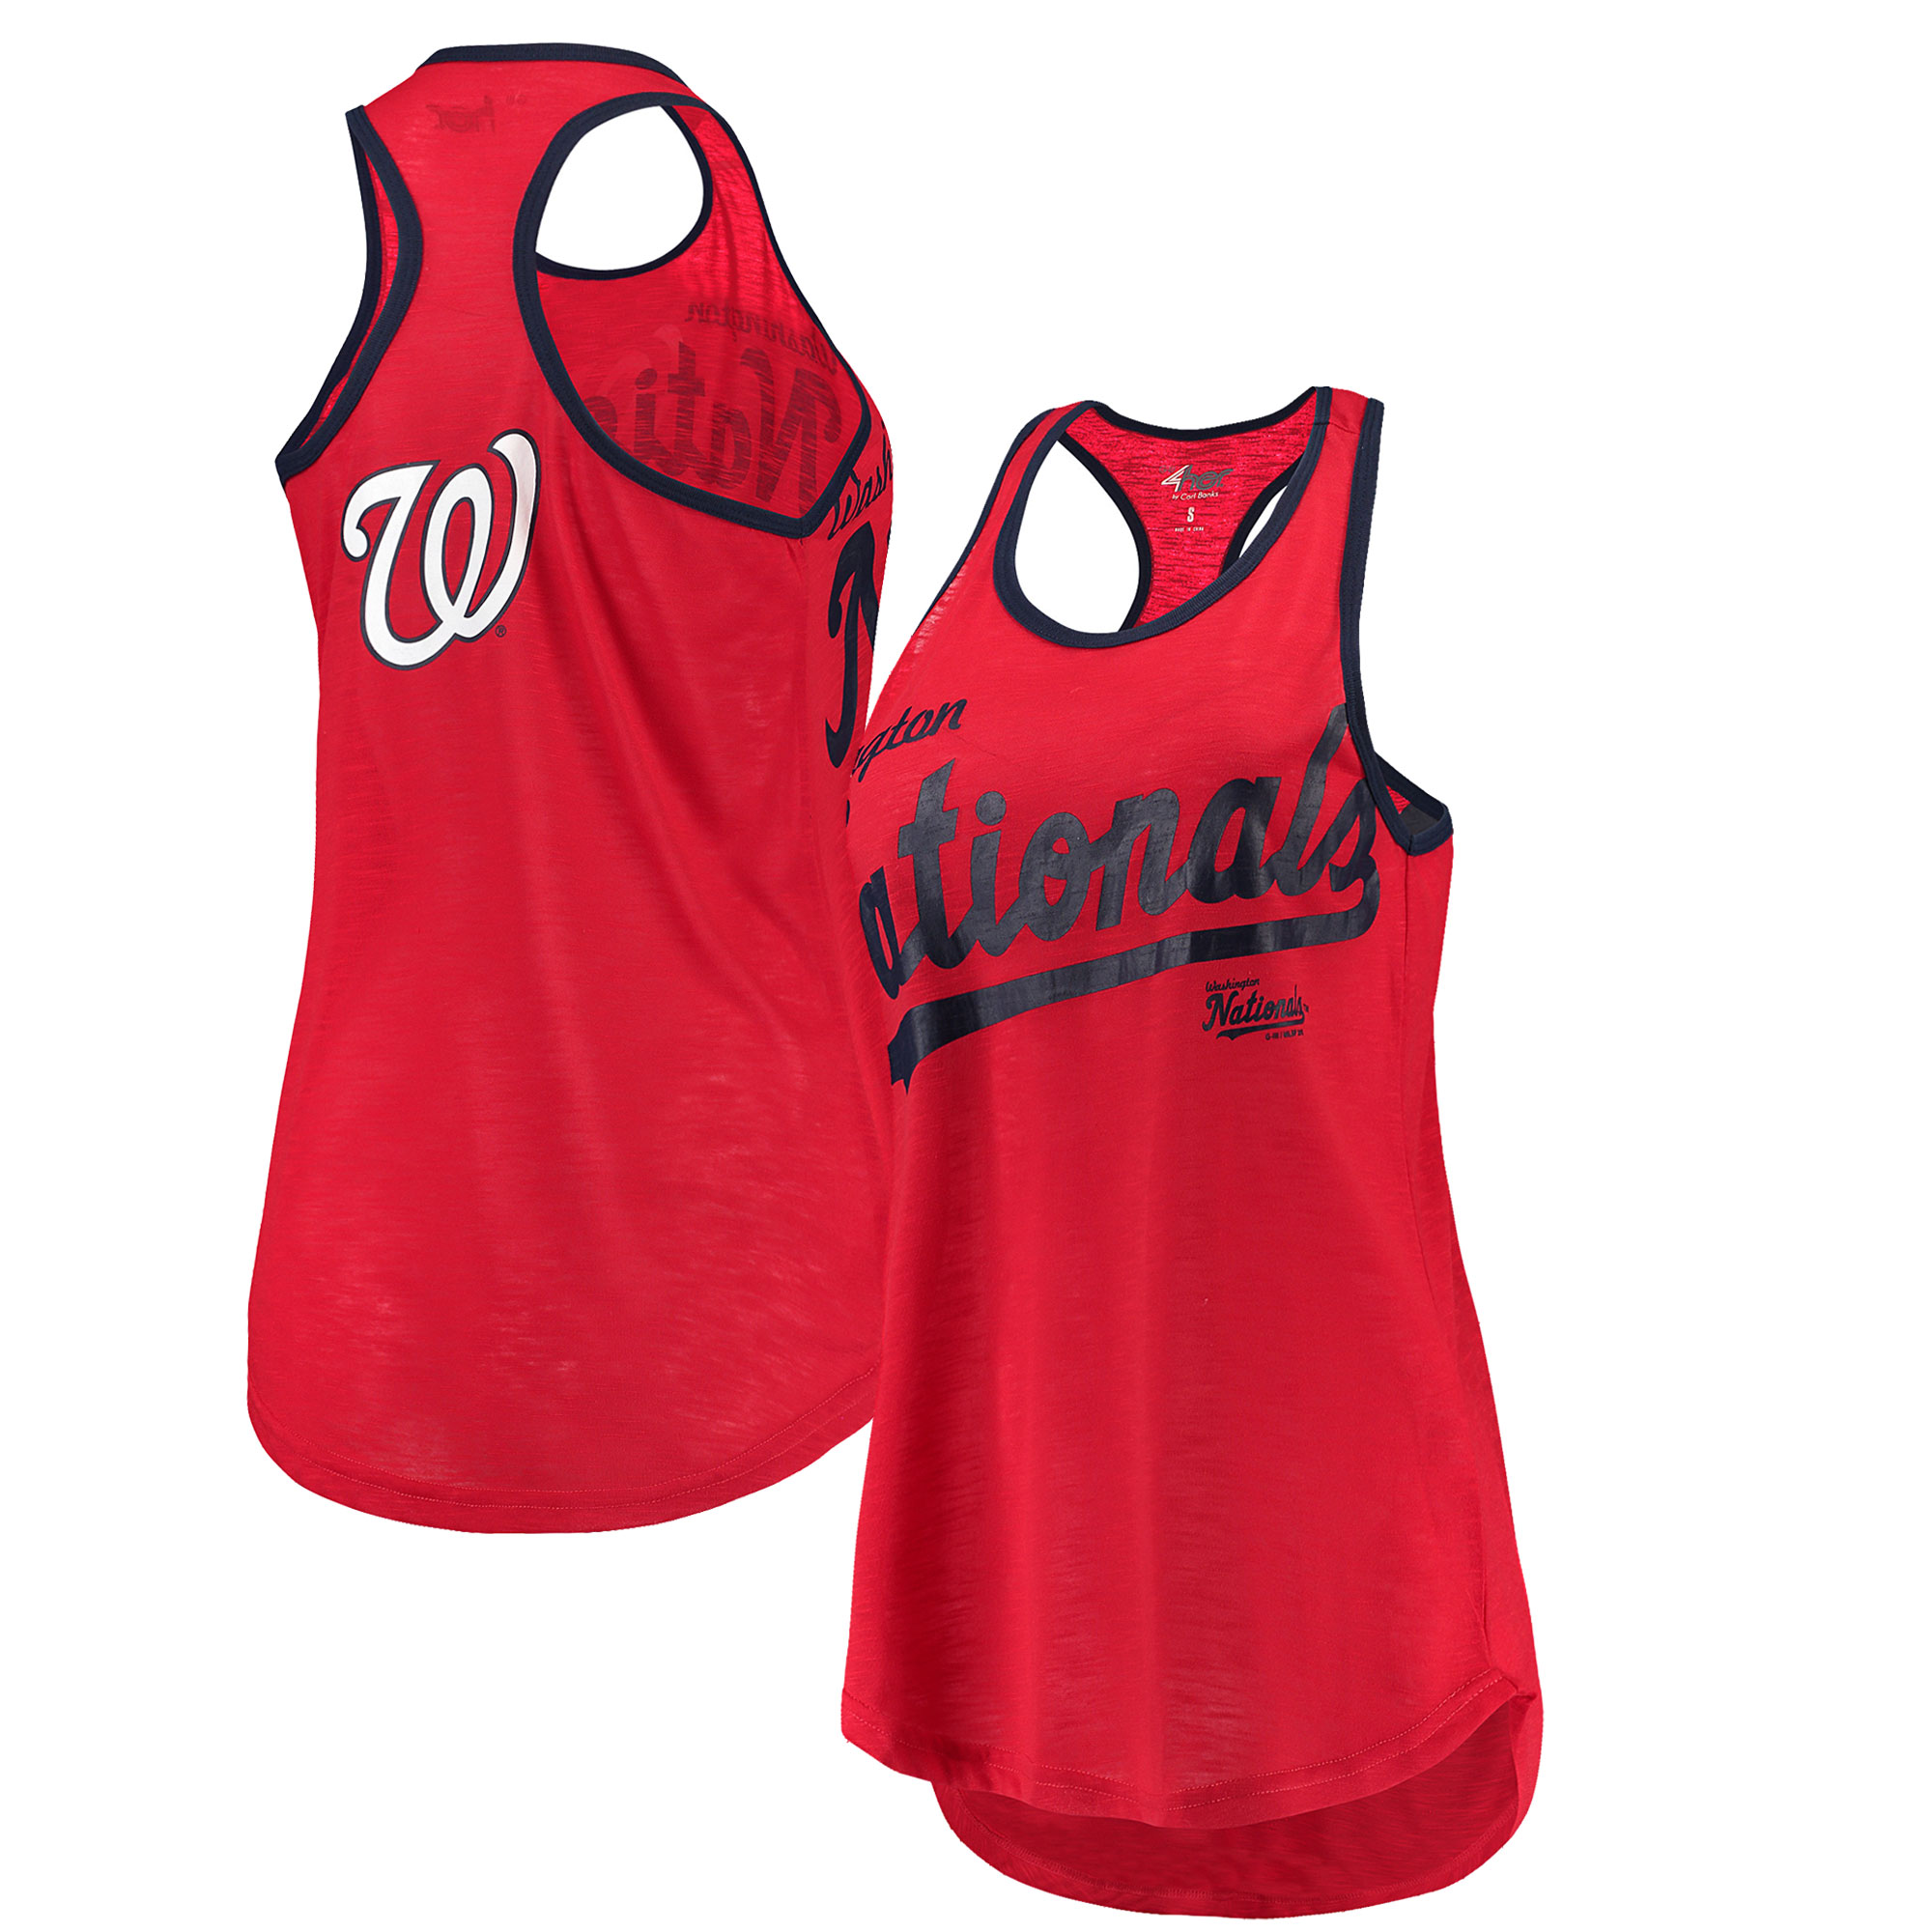 Washington Nationals G-III 4Her by Carl Banks Women's Game Time Tank Top - Red/Navy